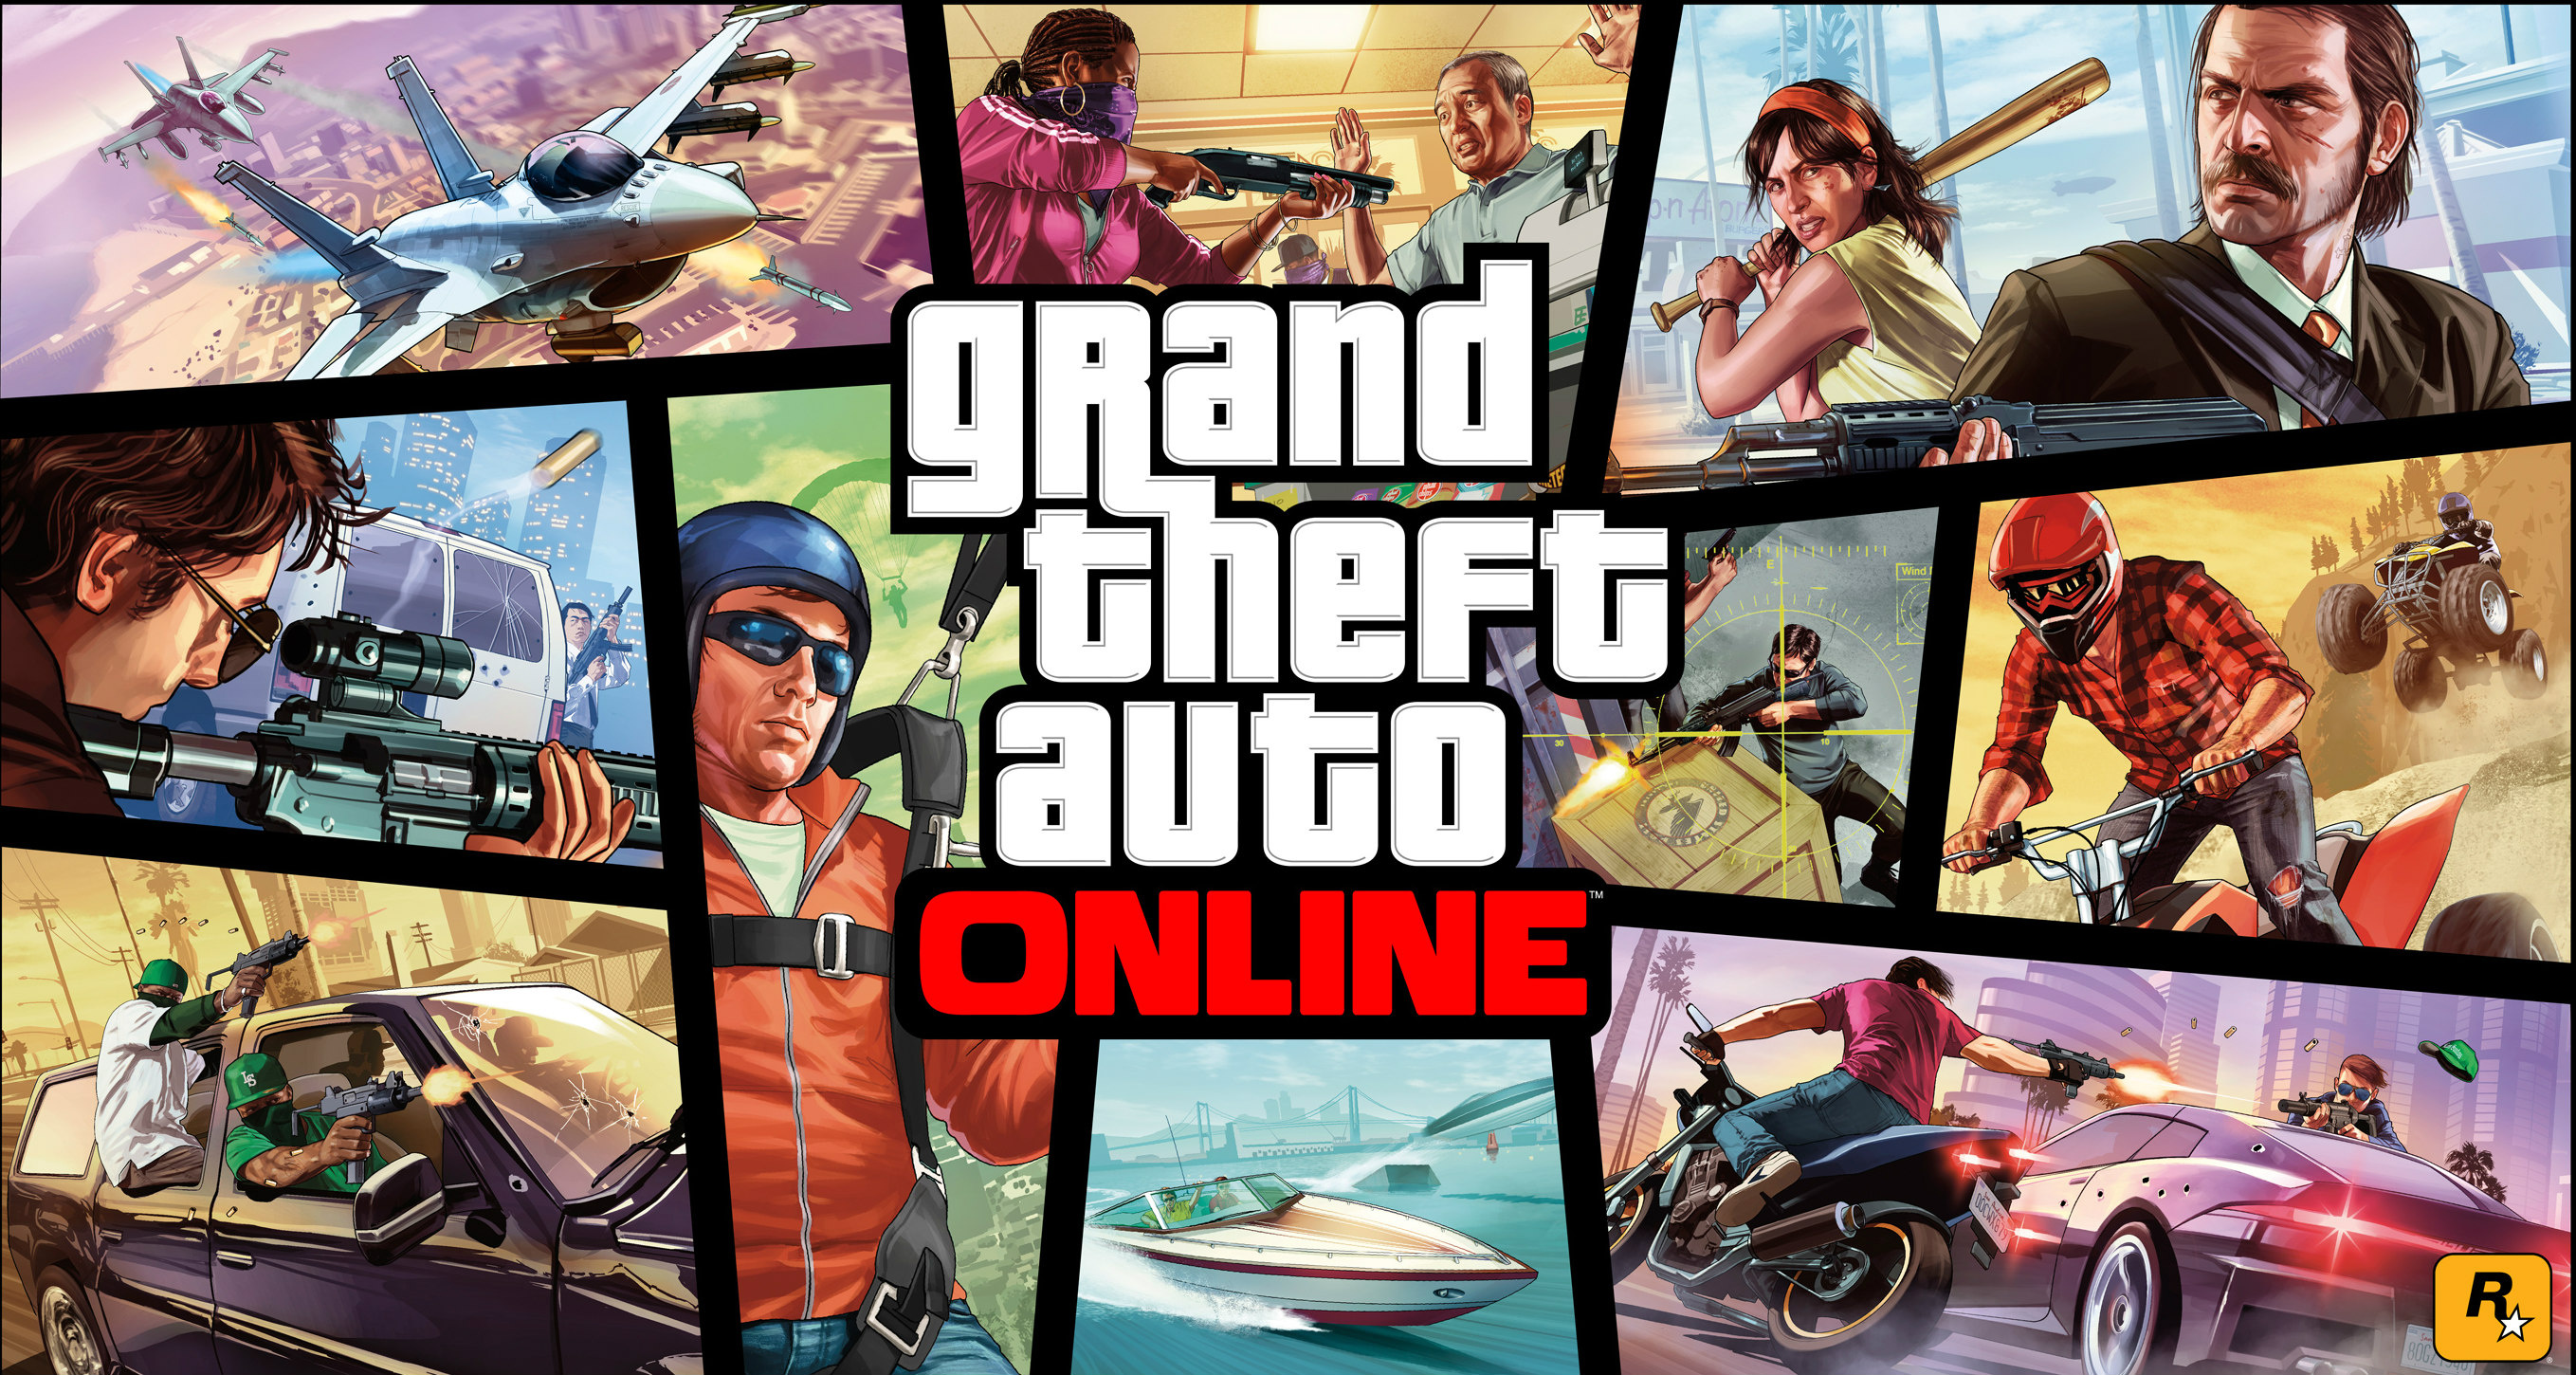 GTA 5 serial keys cd keys product keys 2017, GTA 5 online serial keys cd keys serial number, GTA 5 game cd keys serial keys activation keys 2017